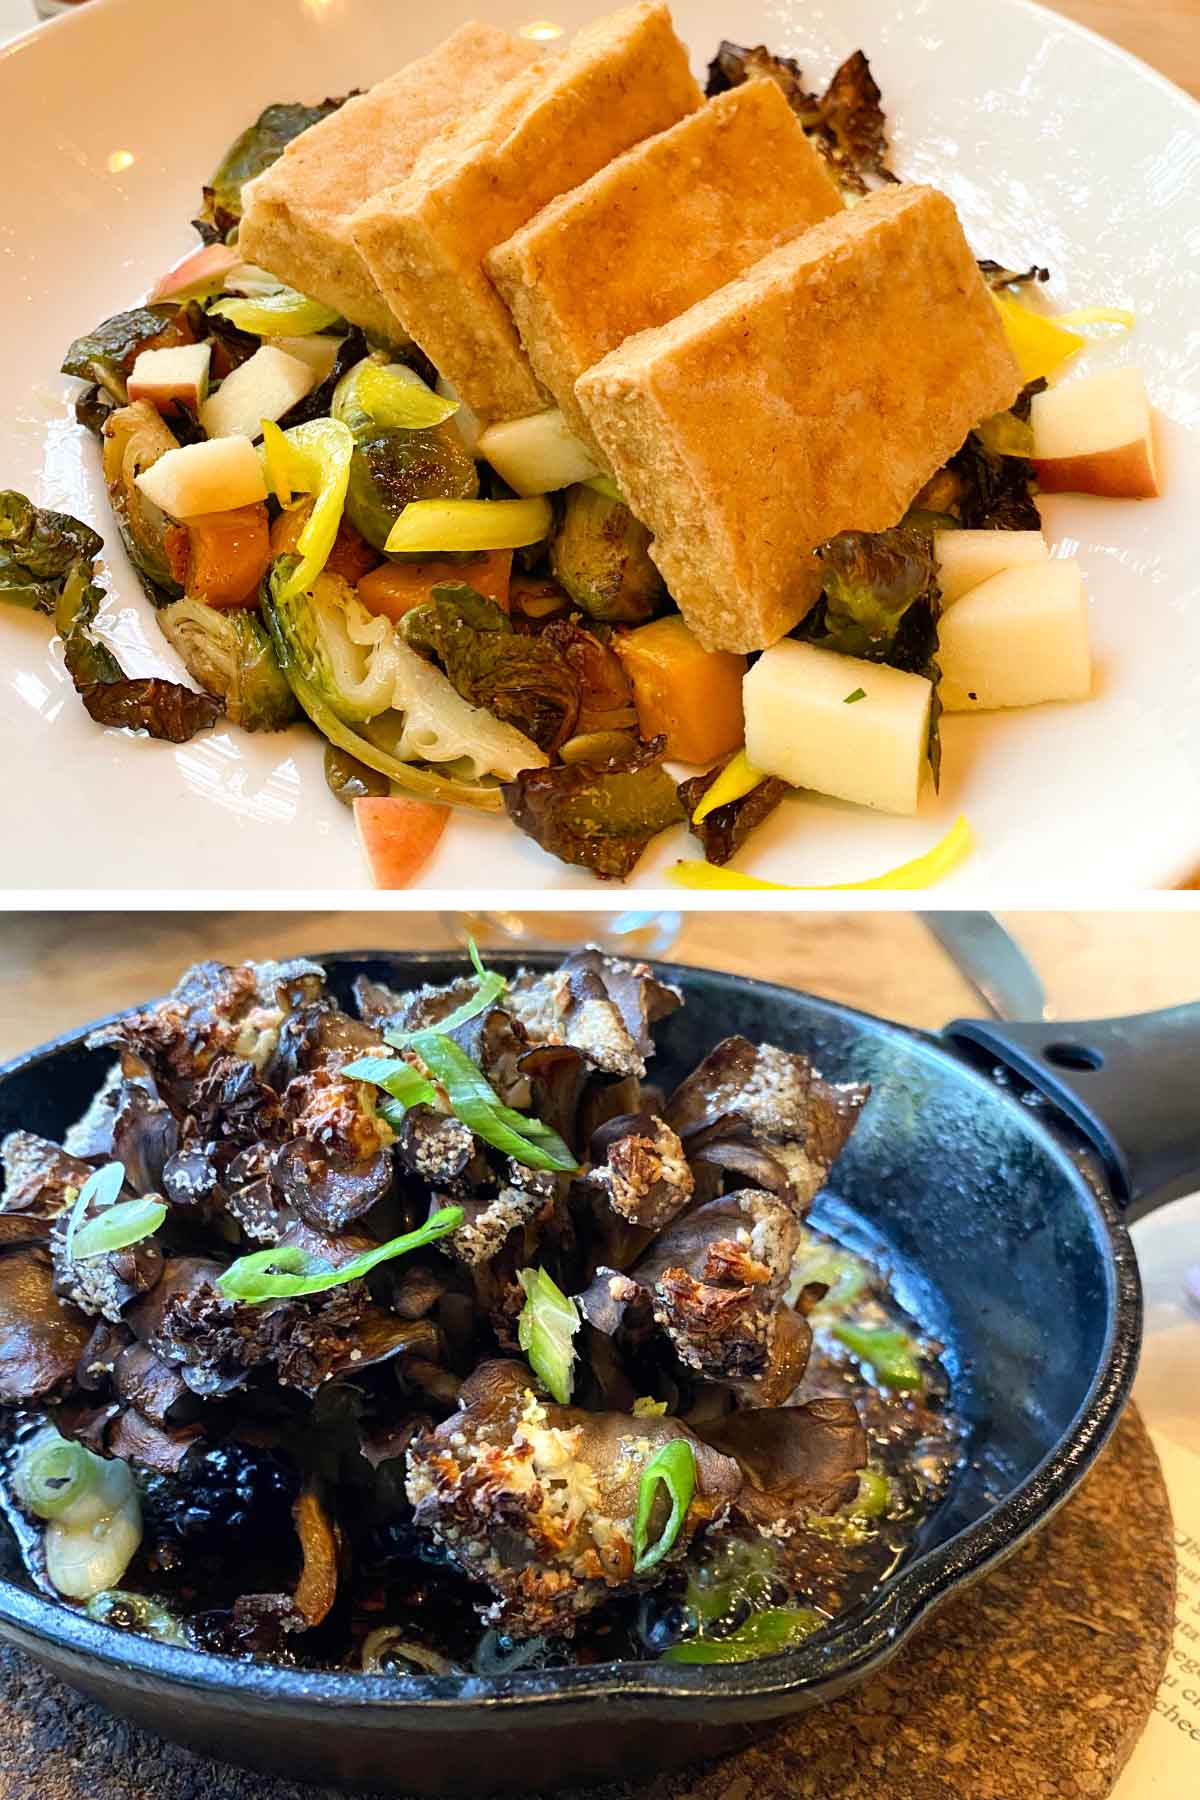 Brussels sprout salad with tofu and the crispy mushroom from Ration + Dram